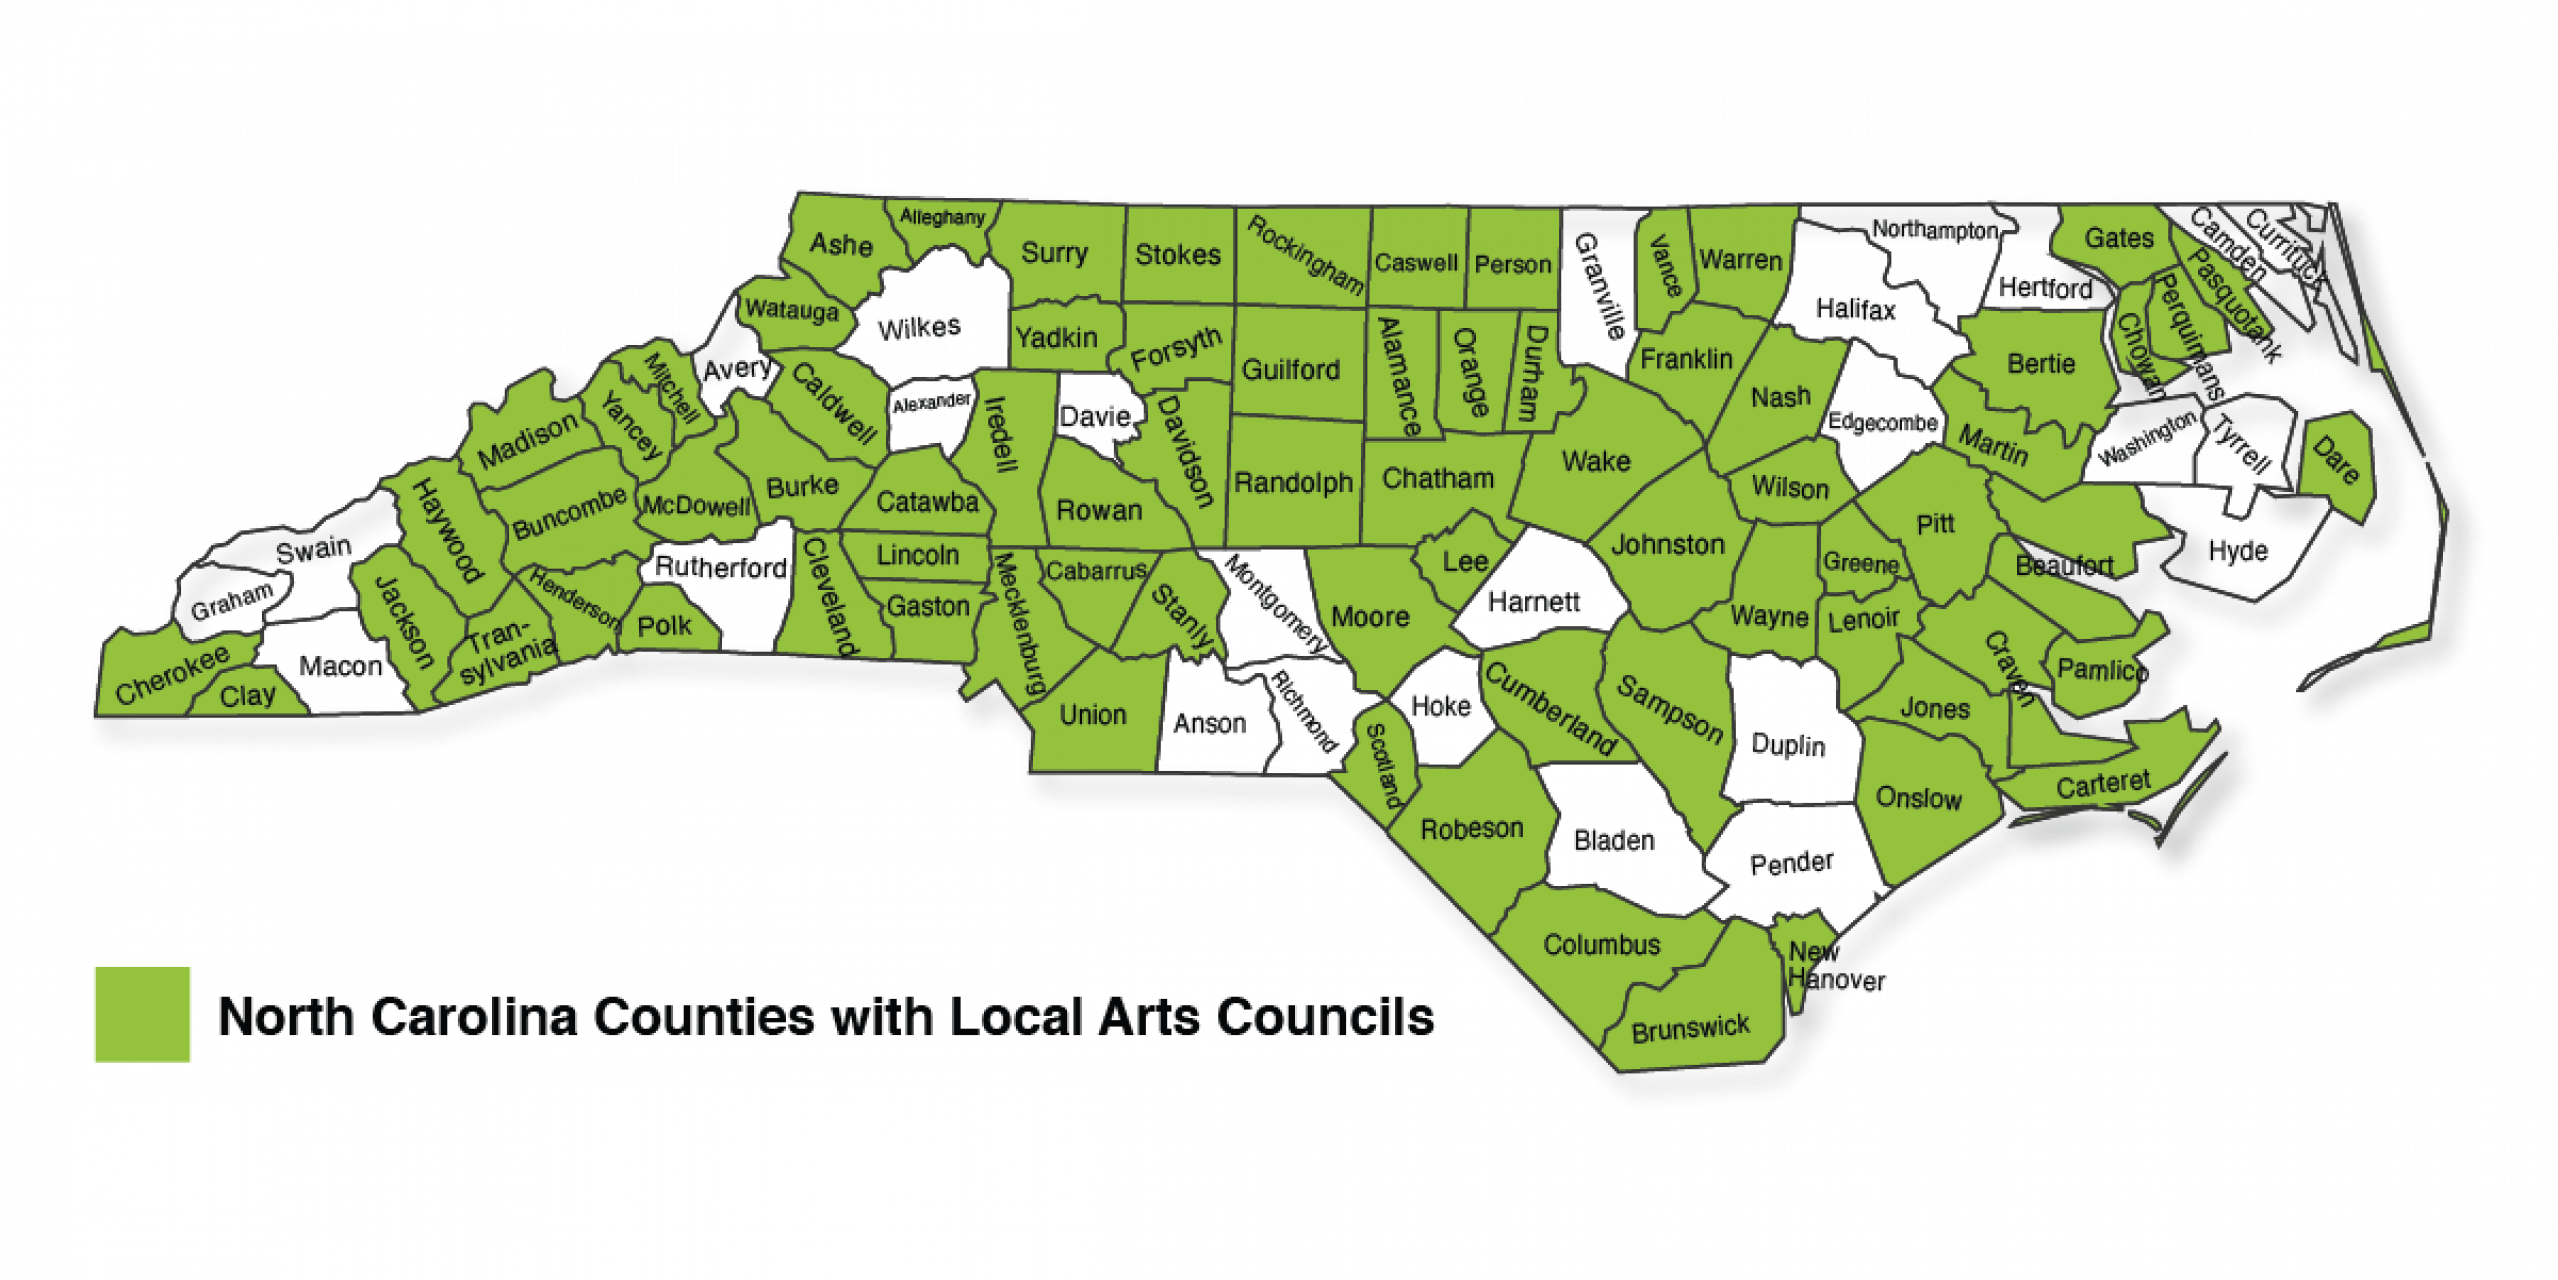 Local Arts Councils in NC as of 2020